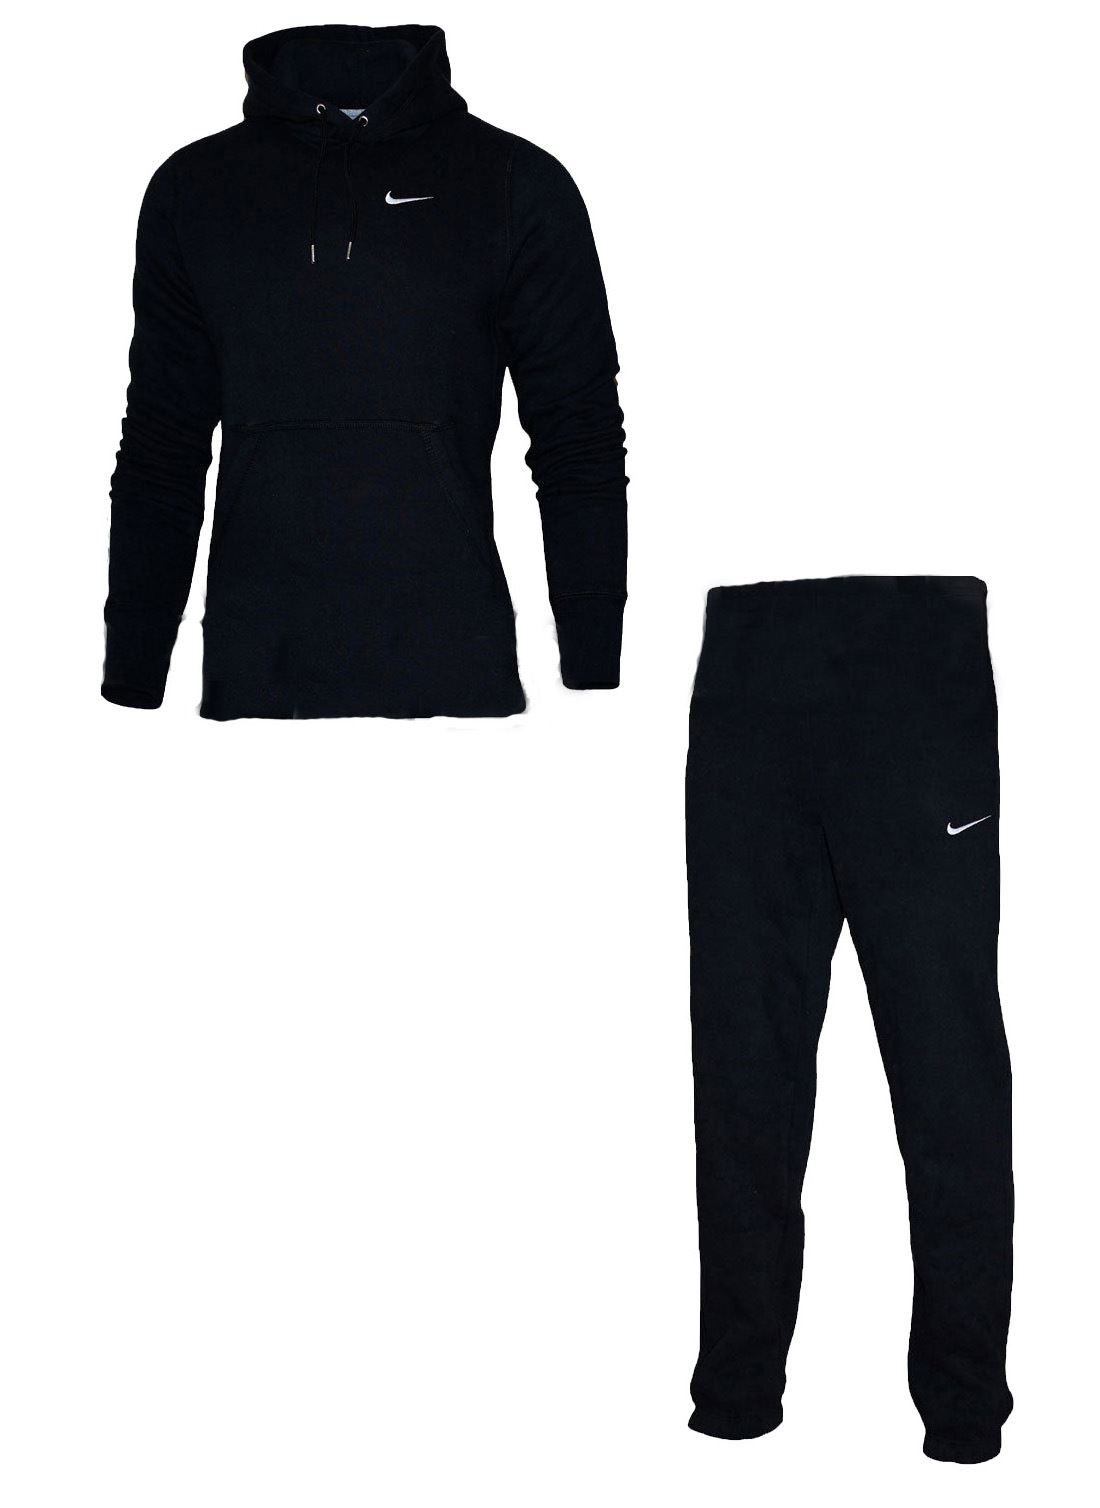 nike mens full tracksuit fleece hooded jogging bottoms joggers